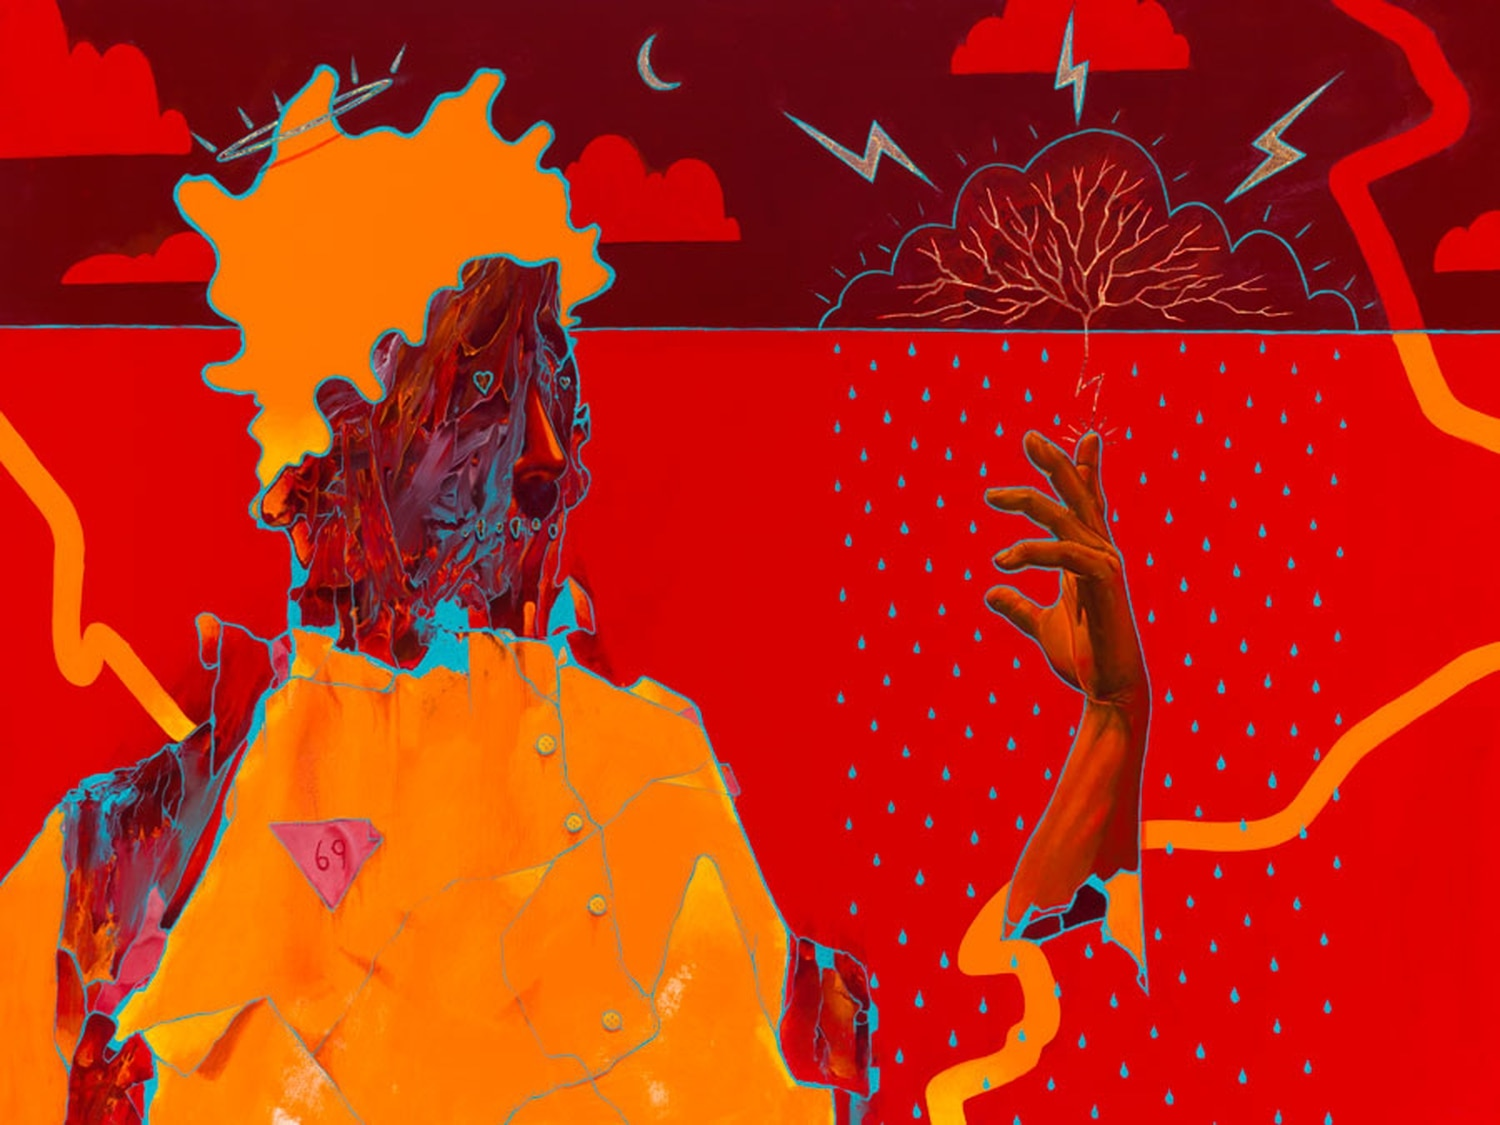 """Find """"Queer Messiah"""" by Anthony Hurd at KEEP Contemporary this month."""